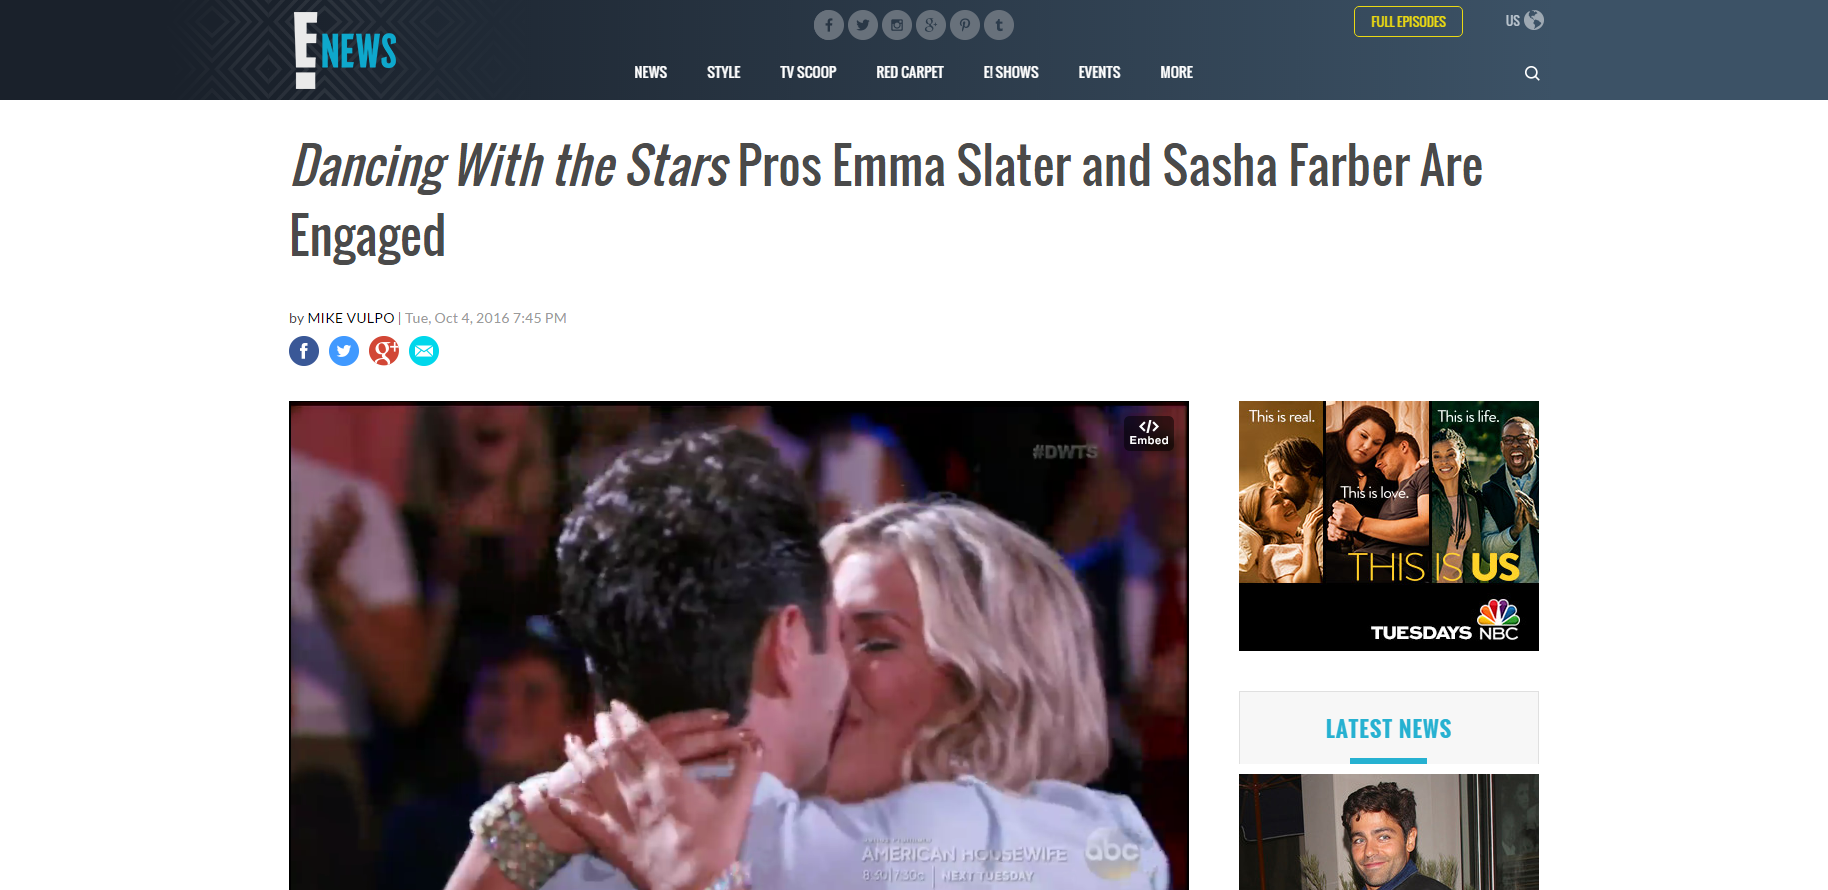 Dancing_With_the_Stars_Pros_Emma_Slater_and_Sasha_Farber_Are_Engaged___E__News.png